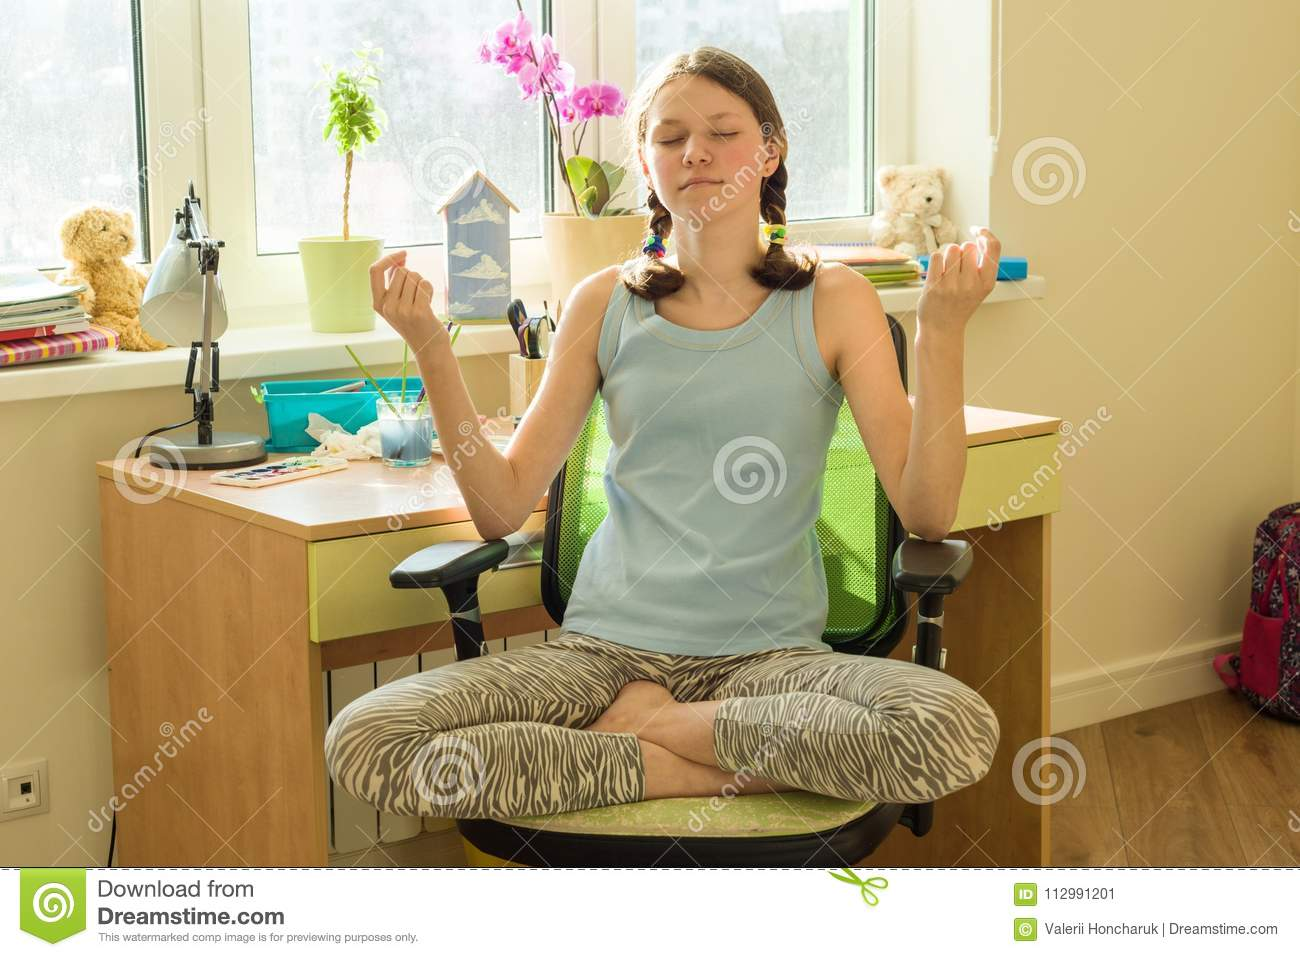 Young teenage girl meditates at home on a chair near the window table, in lotus pose